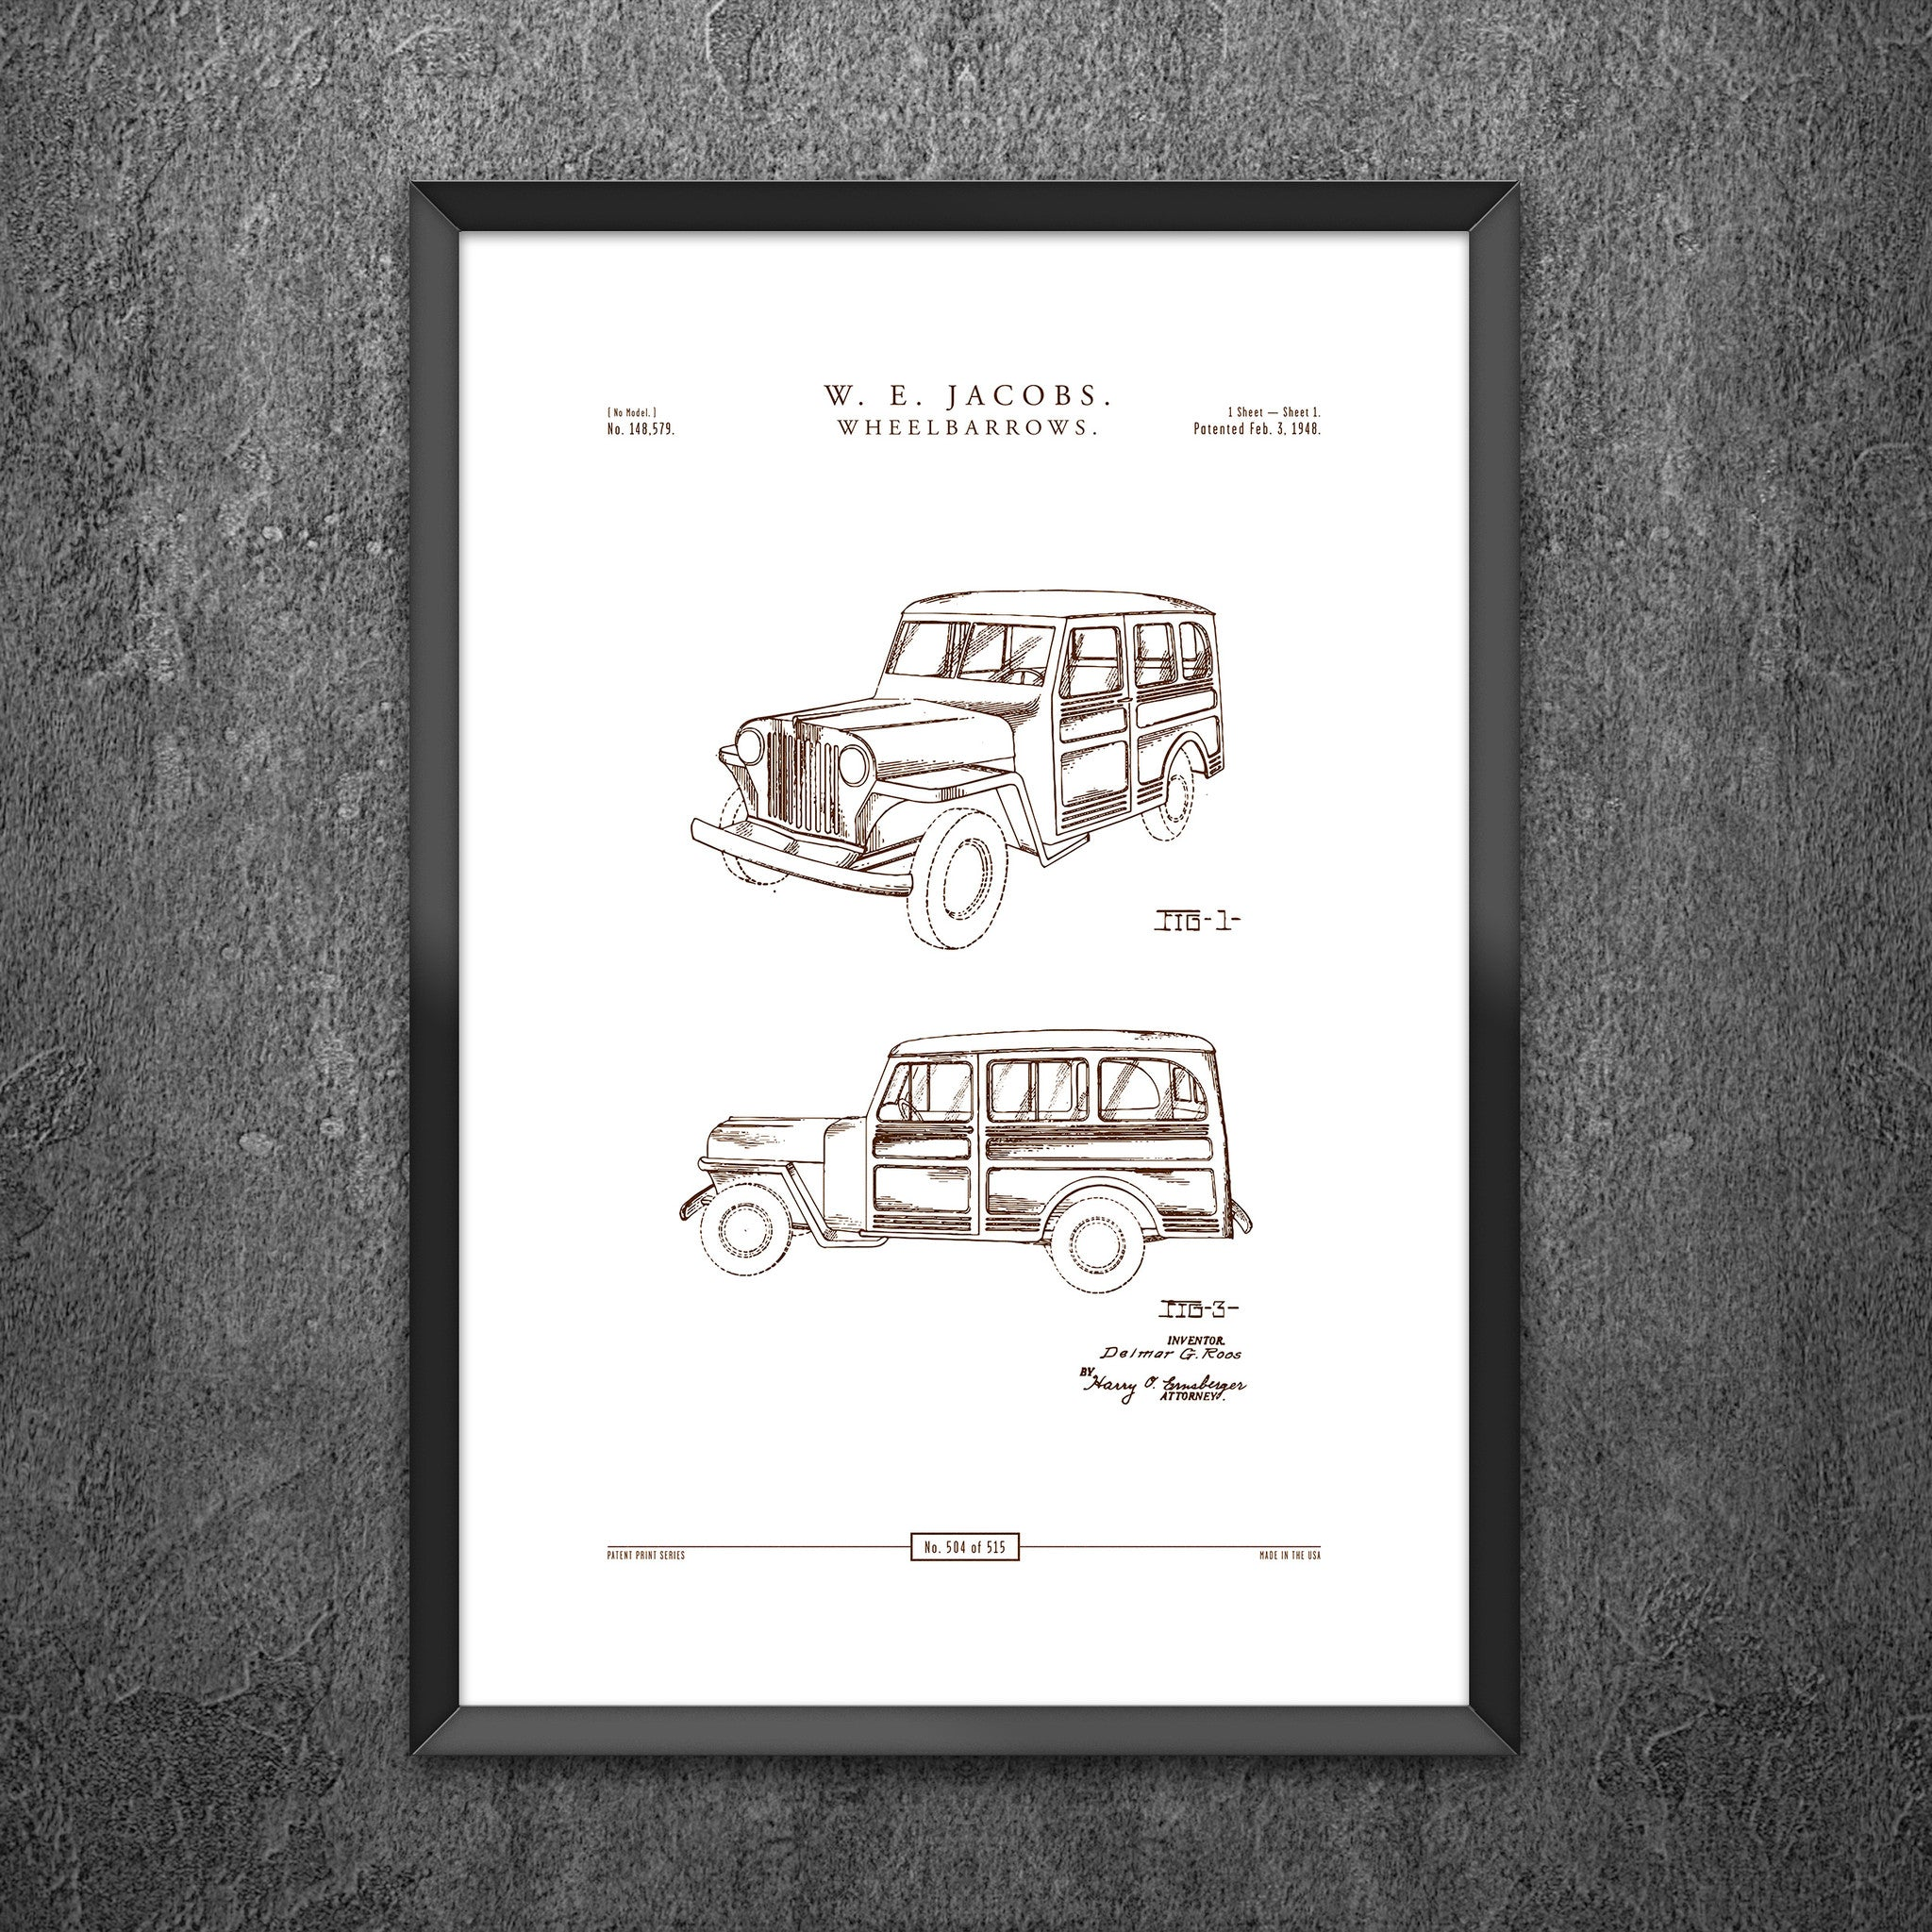 No 504 - Design for an Automobile Station Wagon